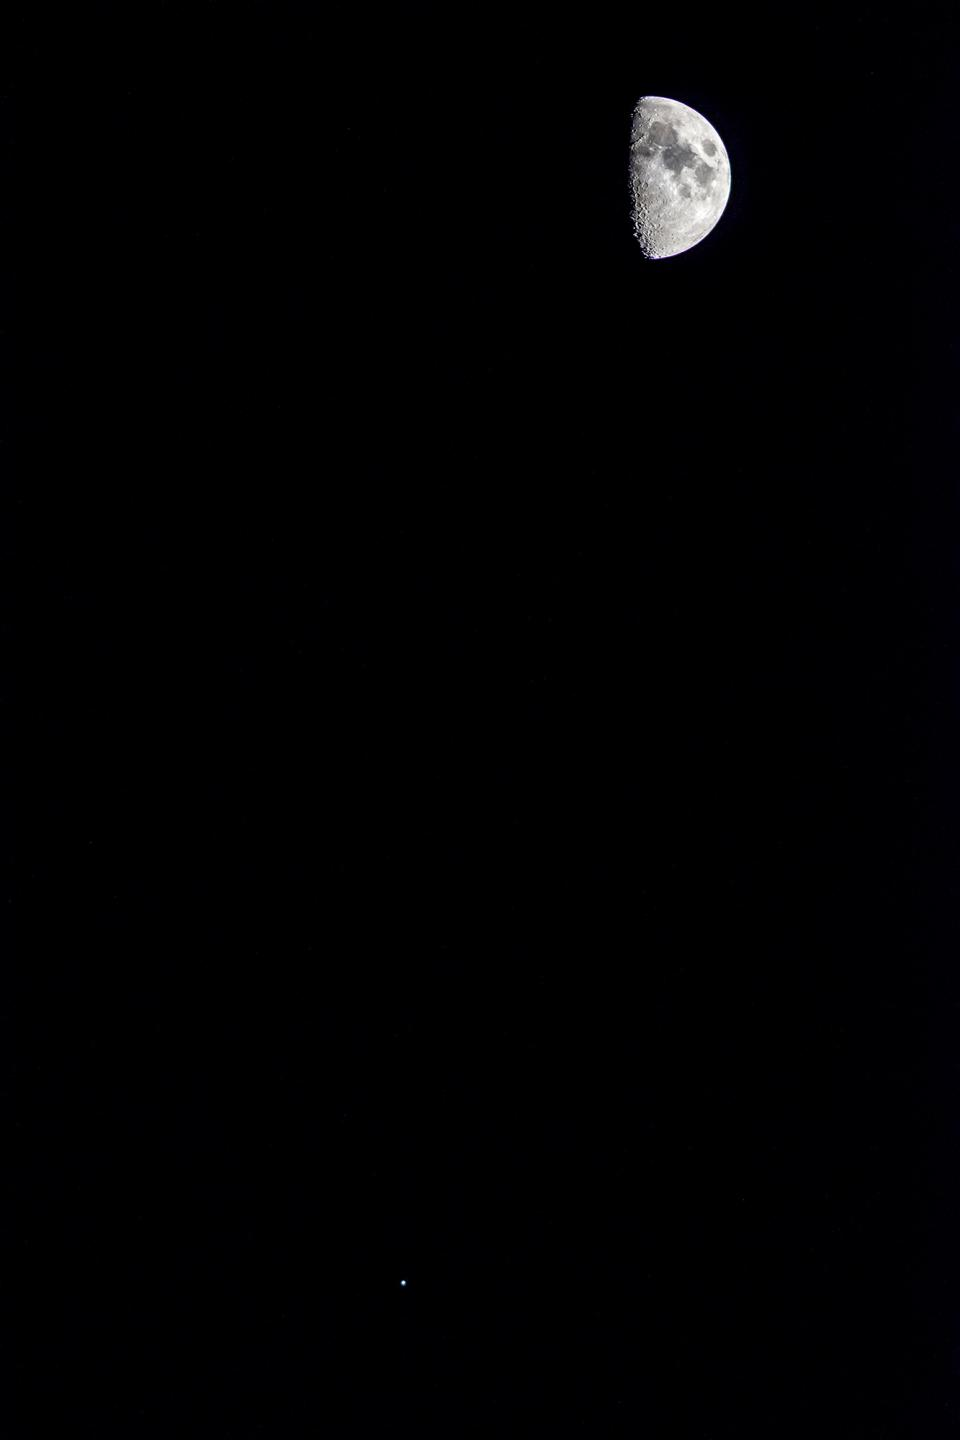 The Moon and Jupiter hang out together in a small patch of sky. Image taken with a FUJIFILM X-T2; Nikon AF-S NIKKOR 300mm f/4D IF-ED lens at f/4; 1/2000-second; ISO1600.